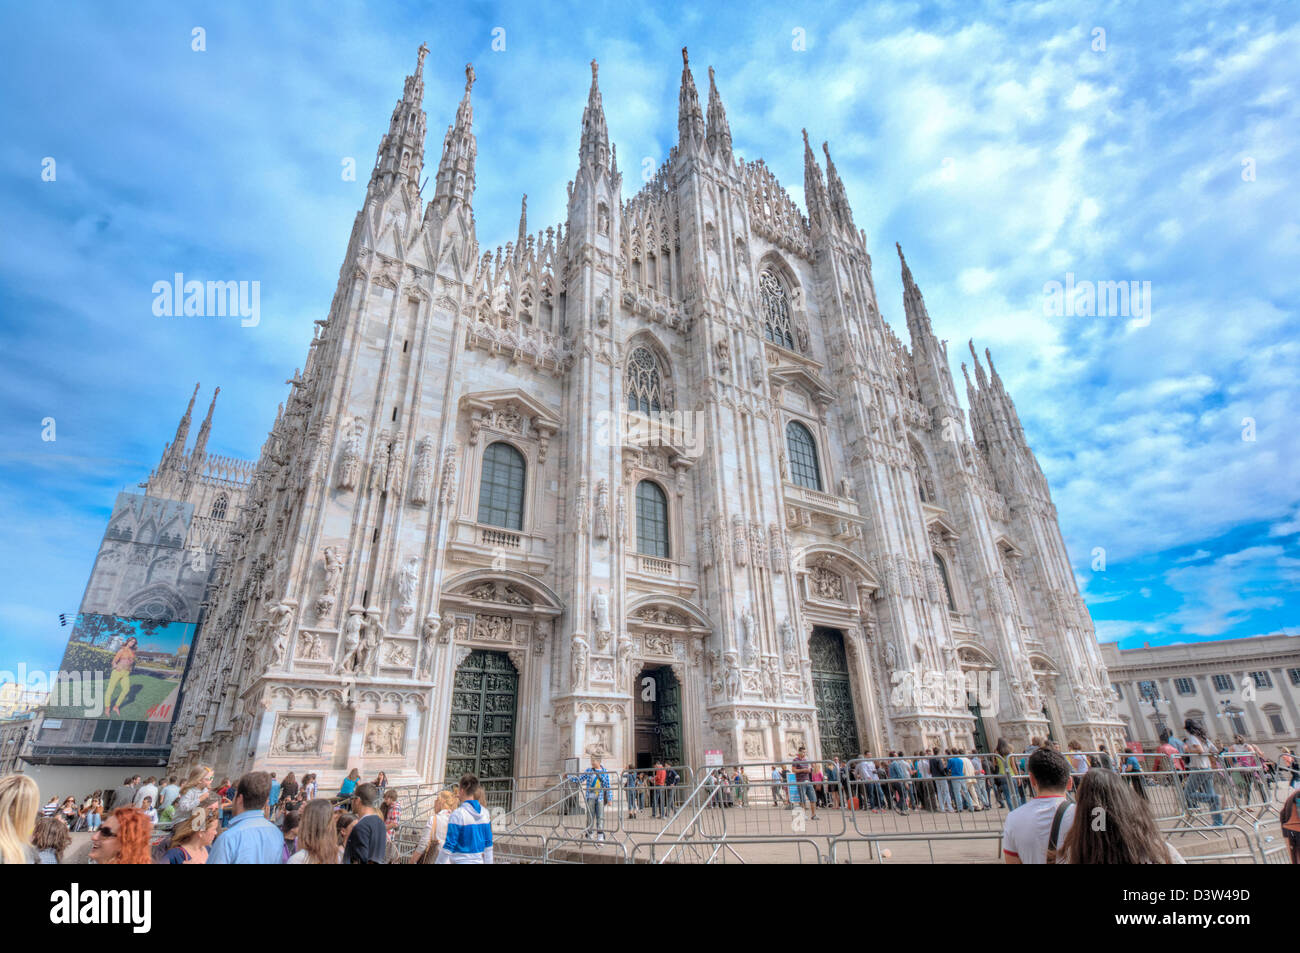 Exterior view of Milan Cathedral - Stock Image